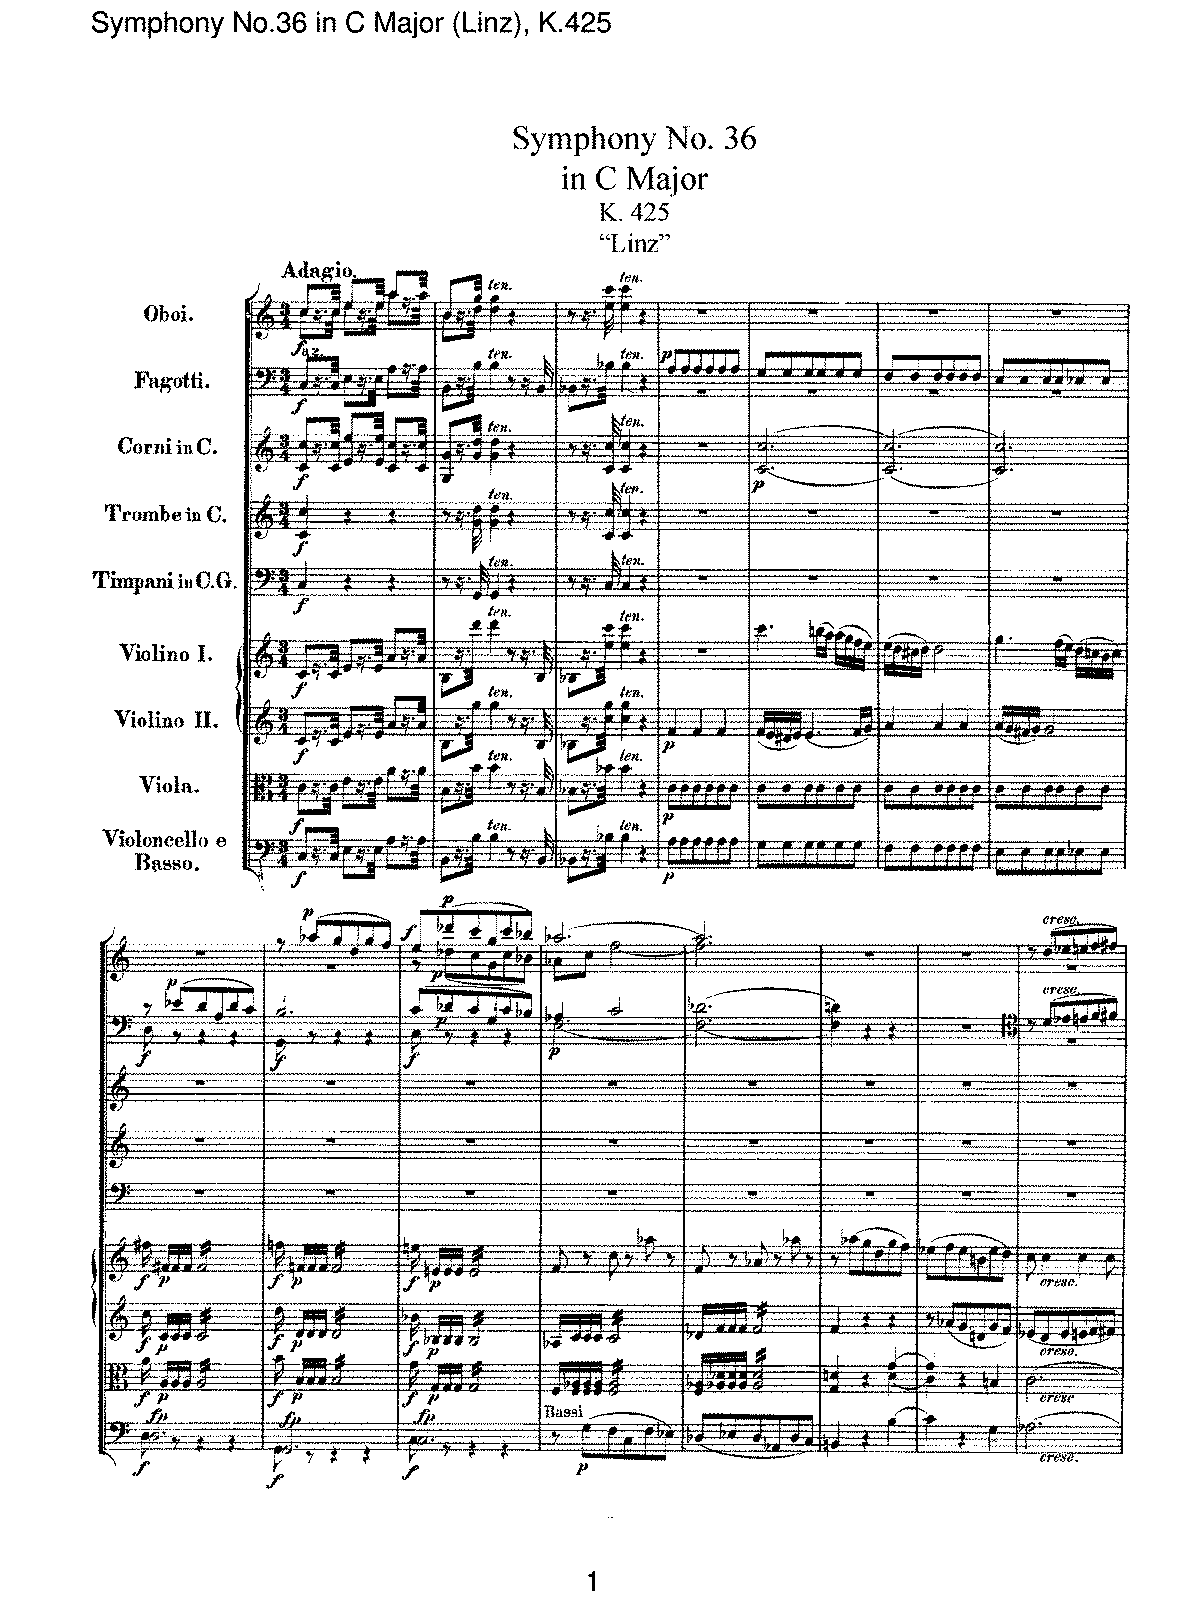 Mozart - Symphony No 36 in C Major (Linz), K425.pdf